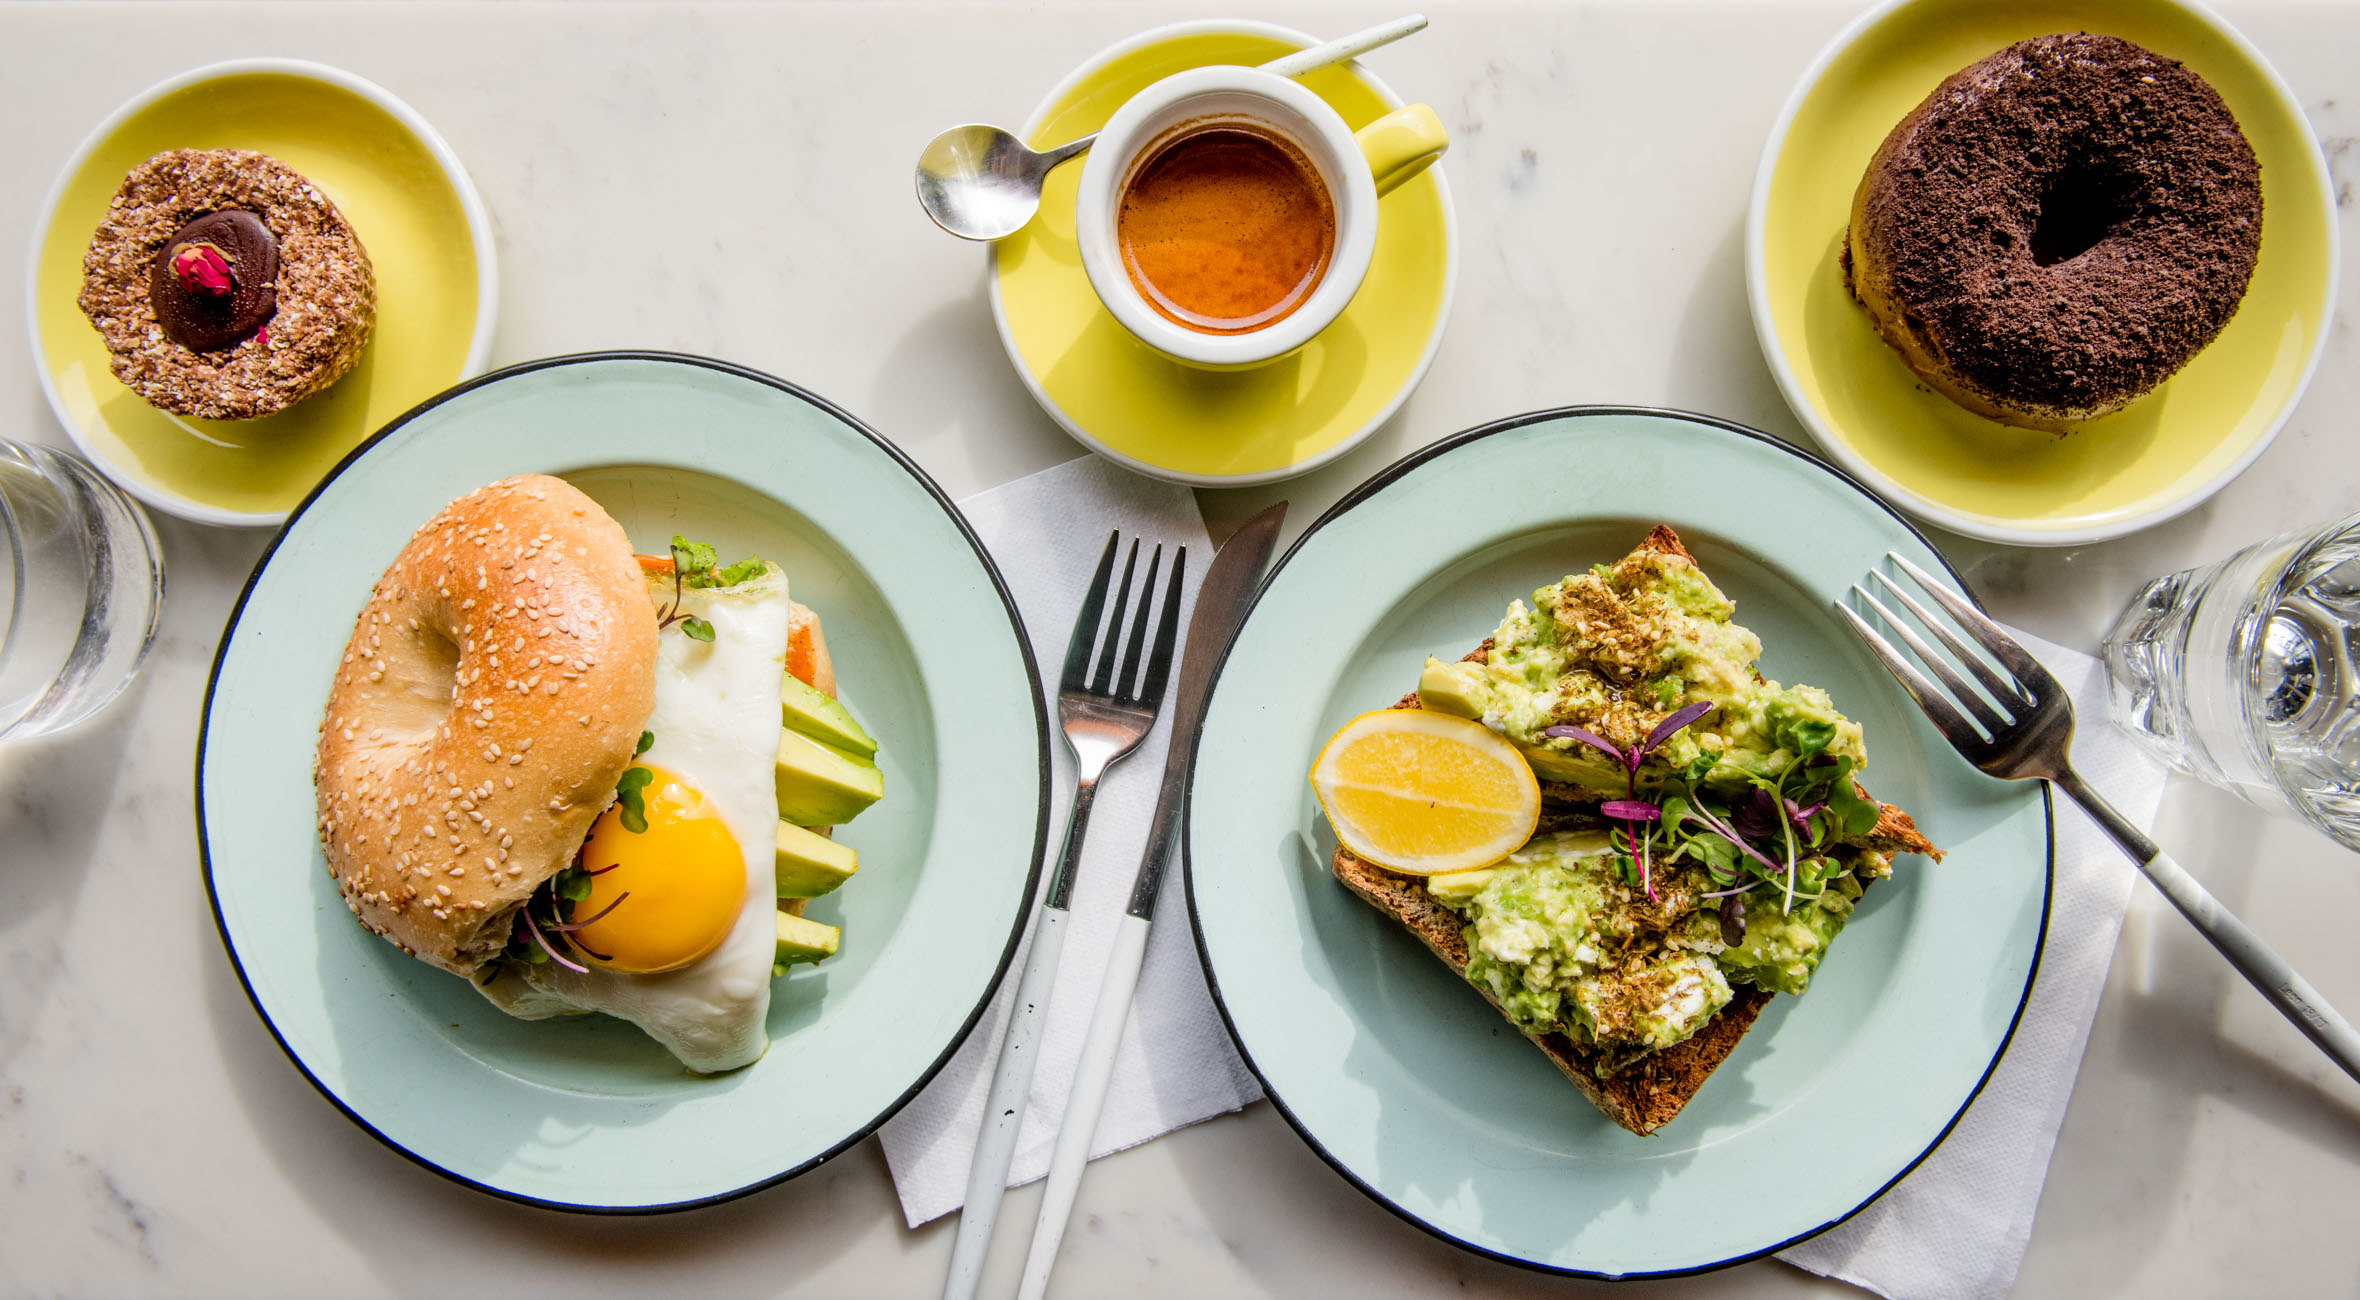 $20 Towards Whatever You Like at Three Seat Espresso – From Avocado Toasts to Vanilla Oats, Cakes, Golden Lattes etc.